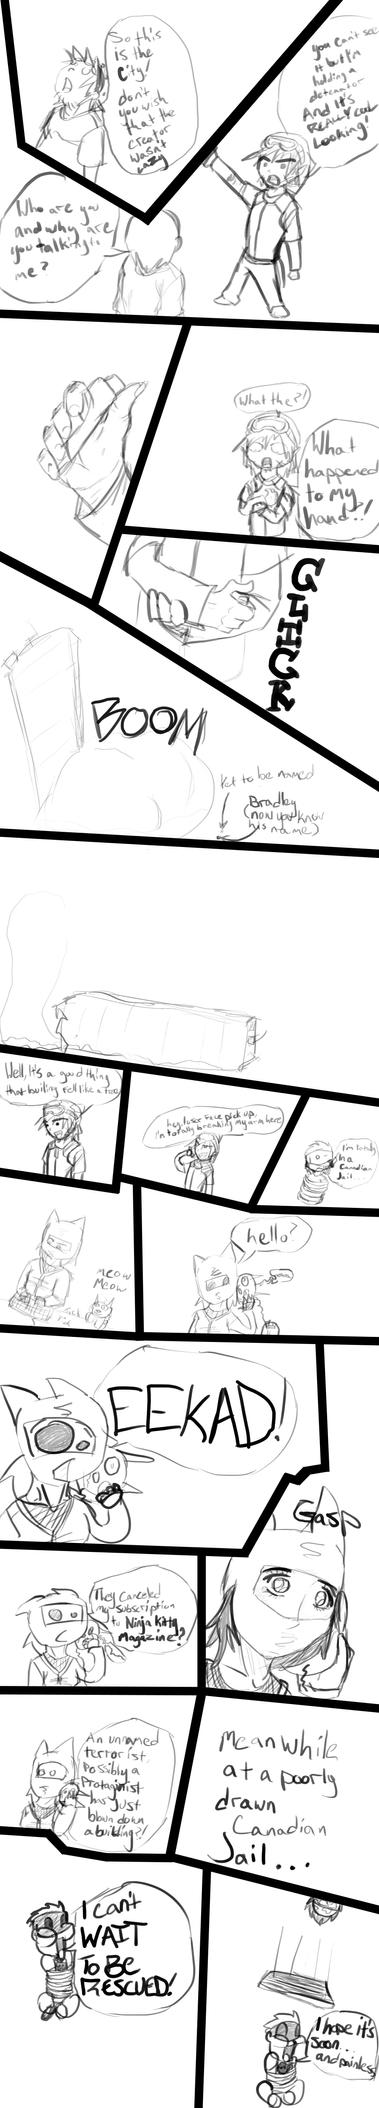 TRMC:R Summary page 2 by ChristianL337